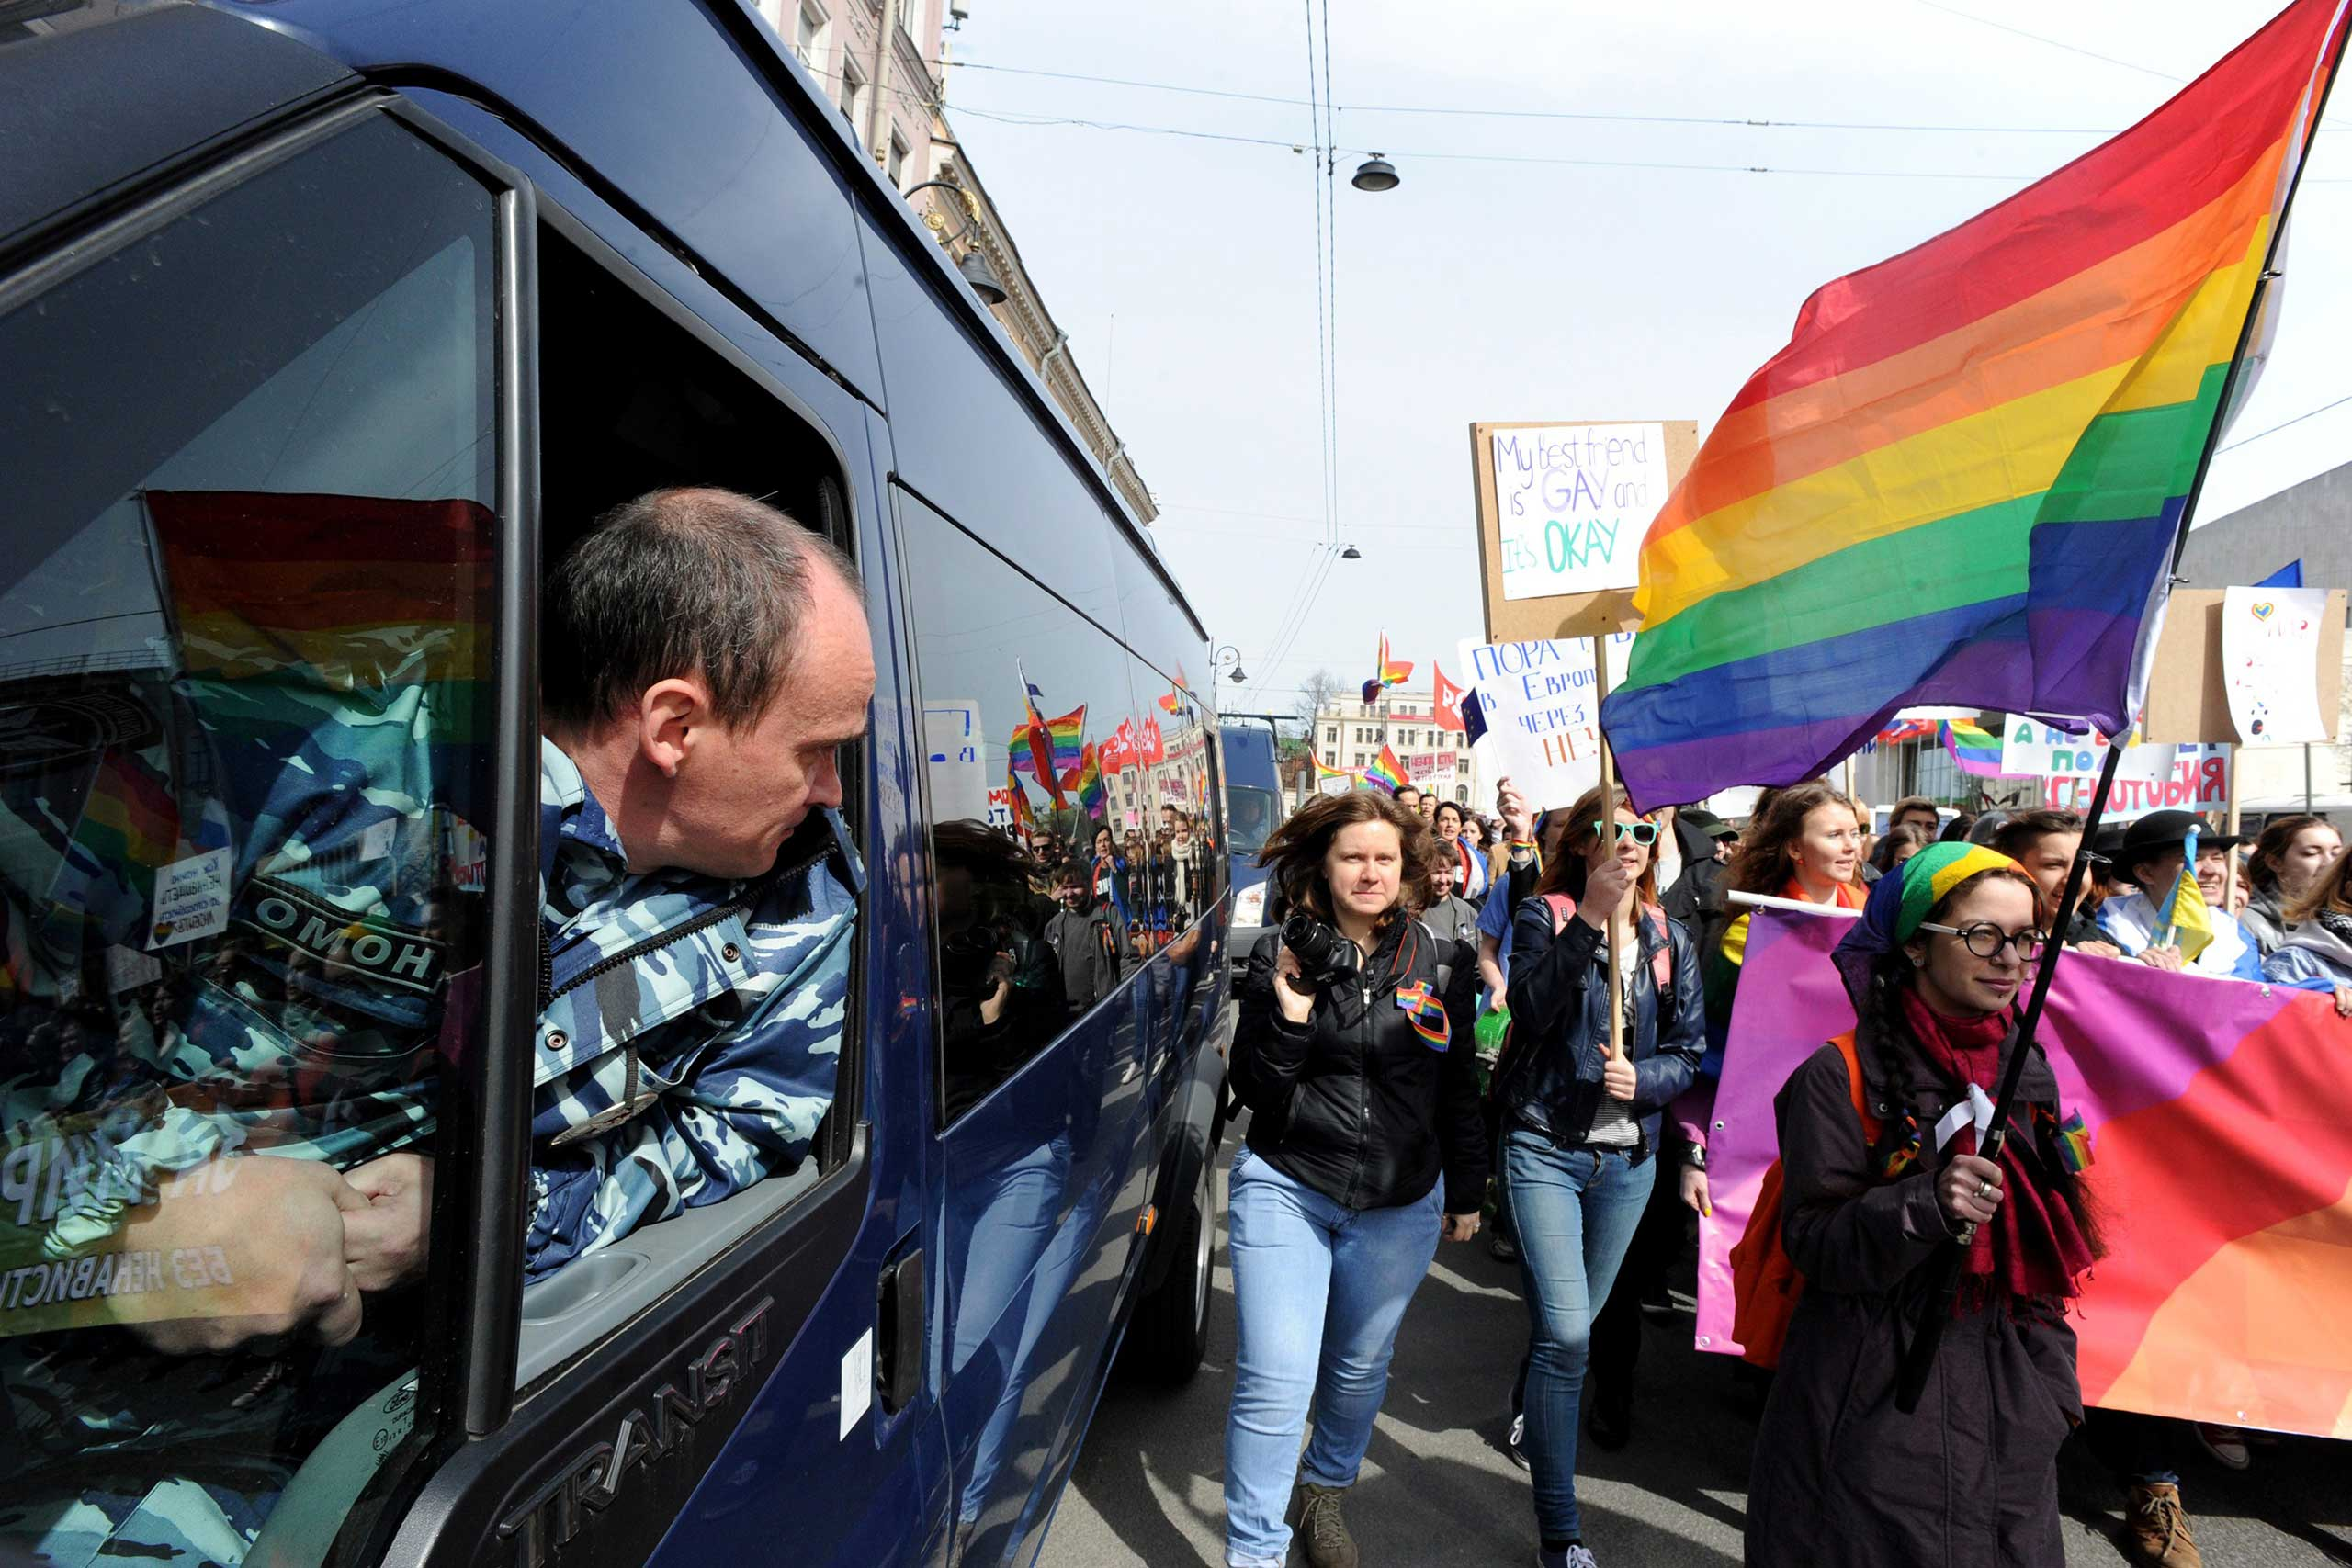 A policeman looks out from a truck as members and supporters of the LGBT community take part in a May Day rally in Saint Petersburg on May 1, 2015.